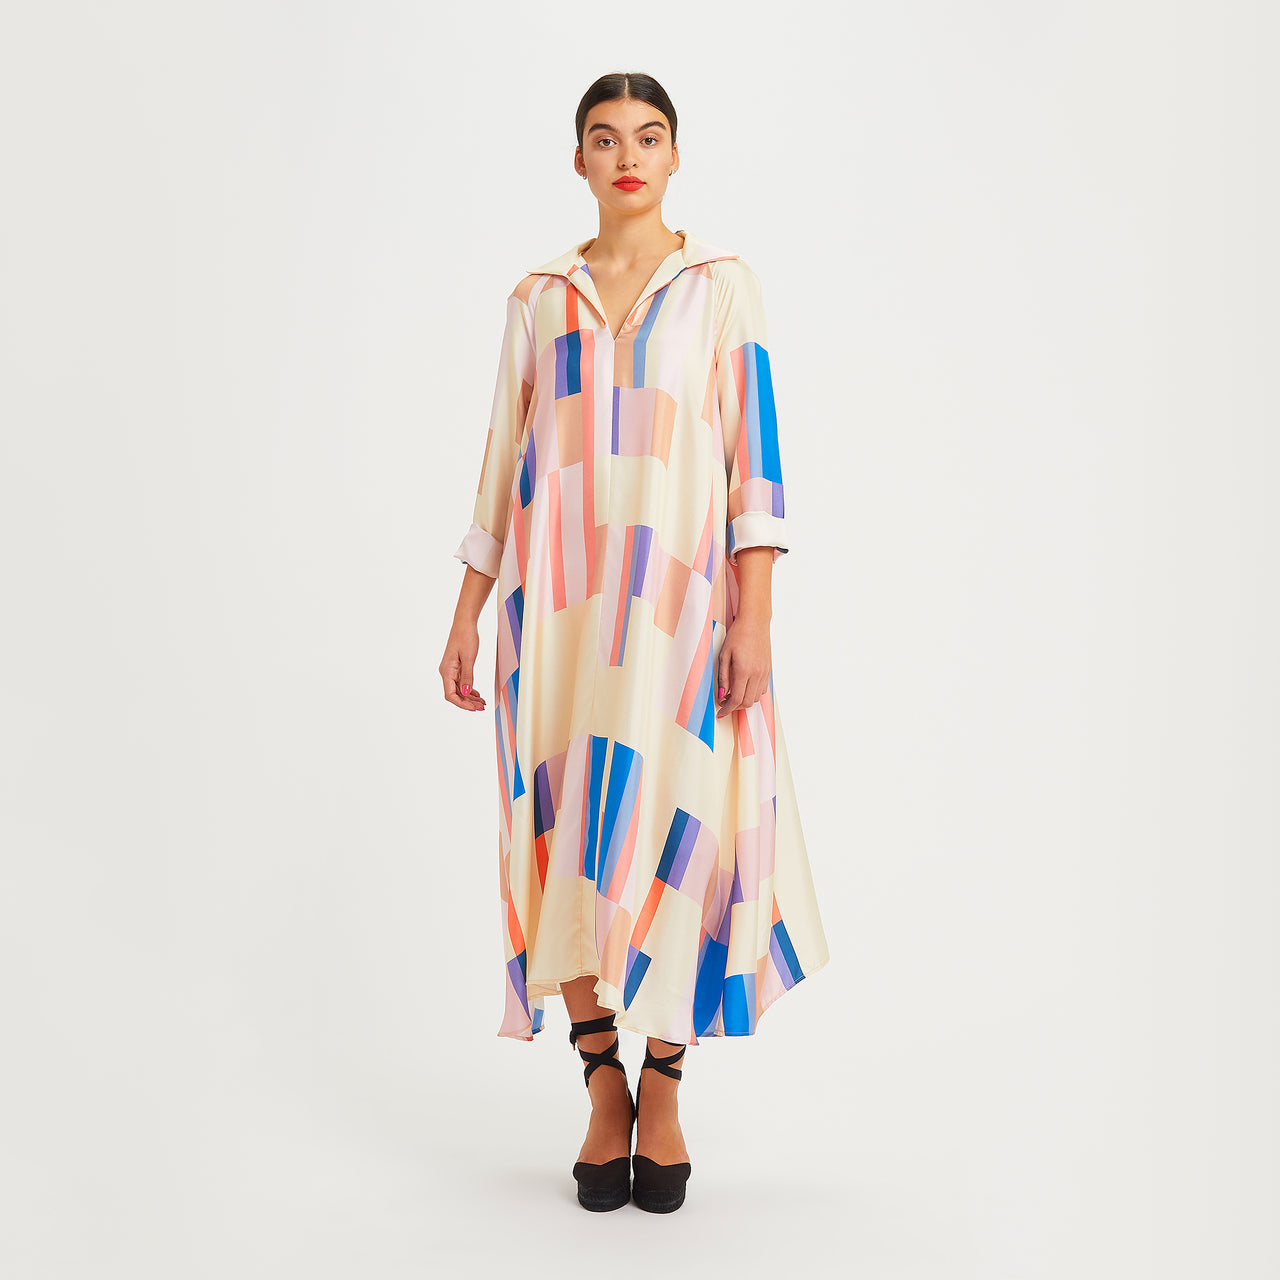 Milroy Palm Springs Dress